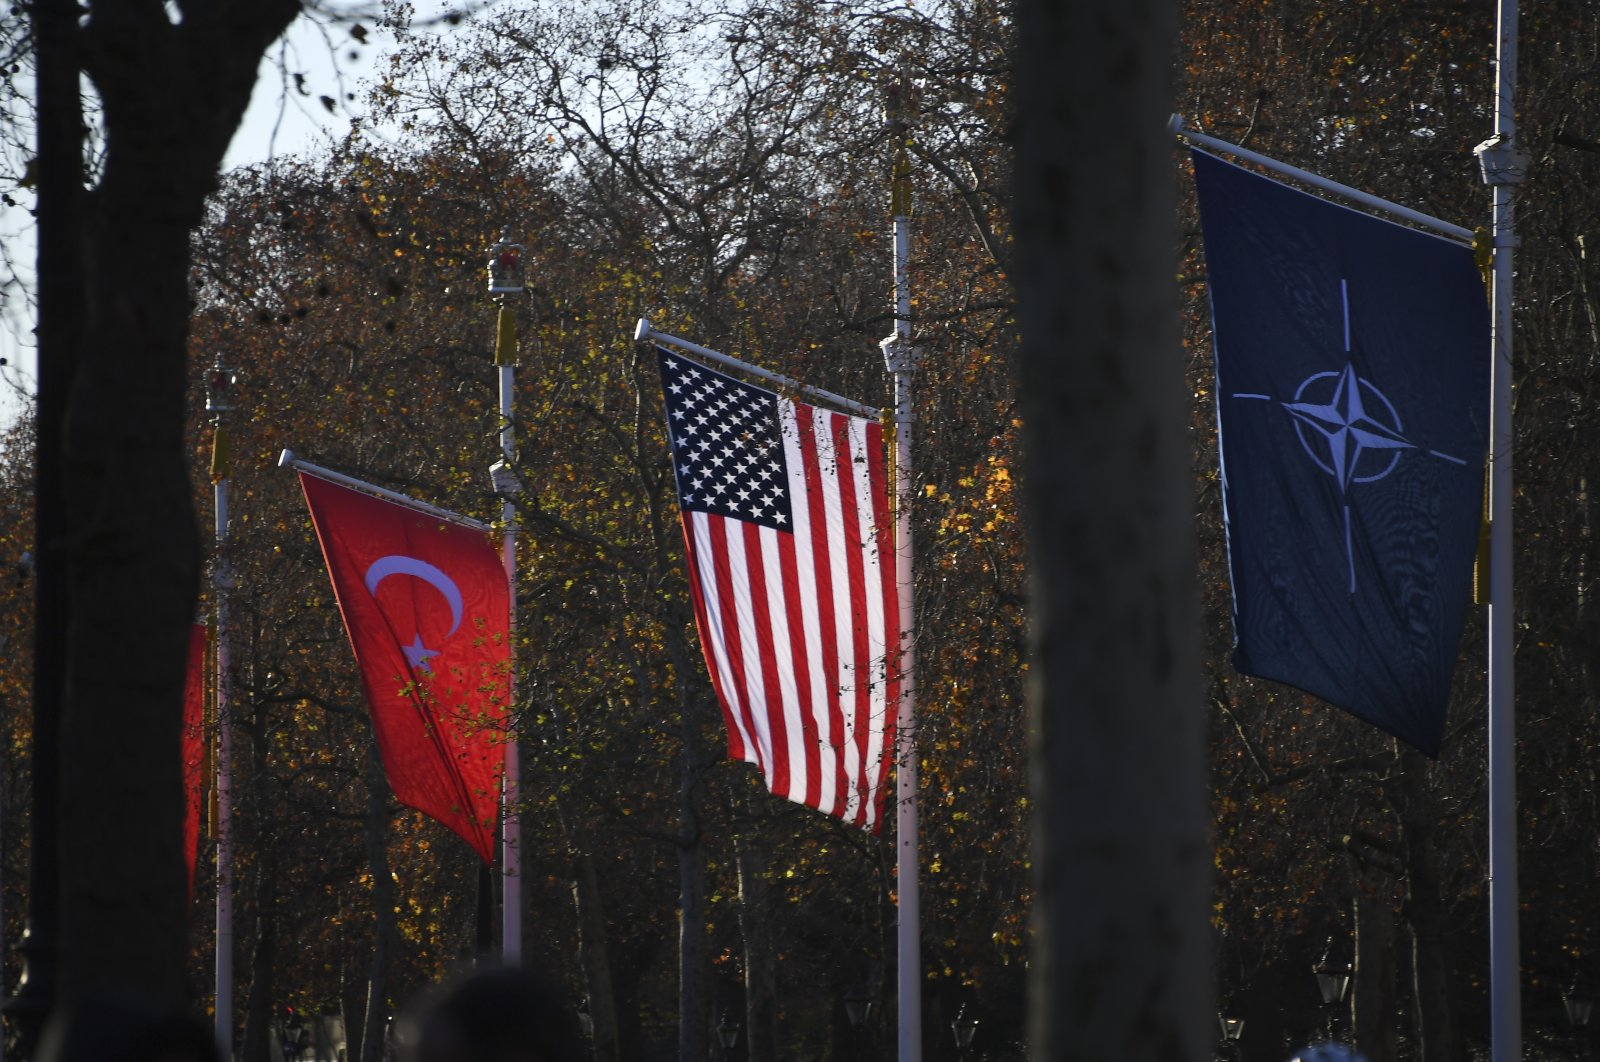 The flags of Turkey, the U.S. and NATO line The Mall at Buckingham Palace, London, the U.K., Dec. 3, 2019. (AP Photo)